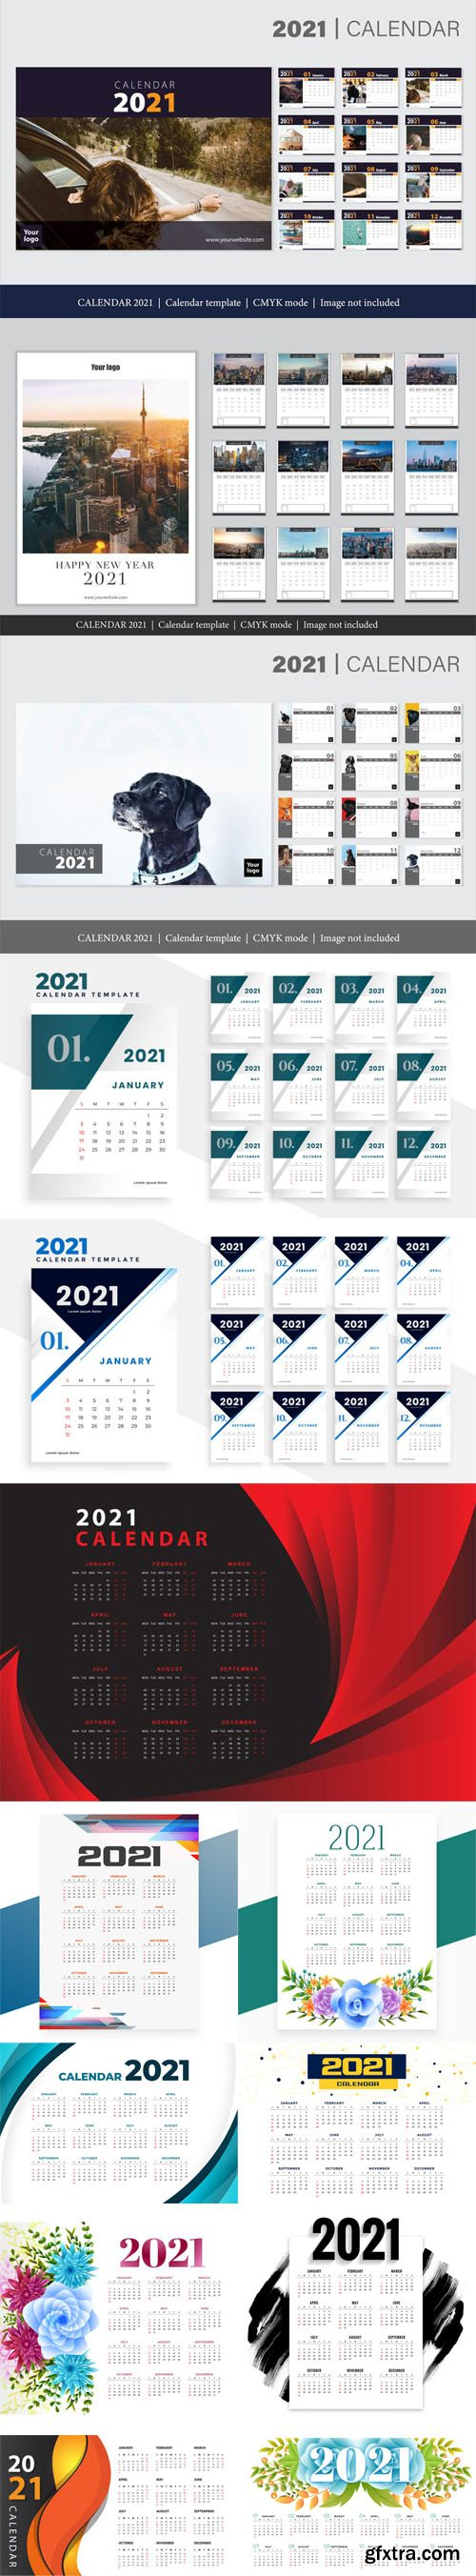 14 New Year 2021 Calendars Vector Templates Collection